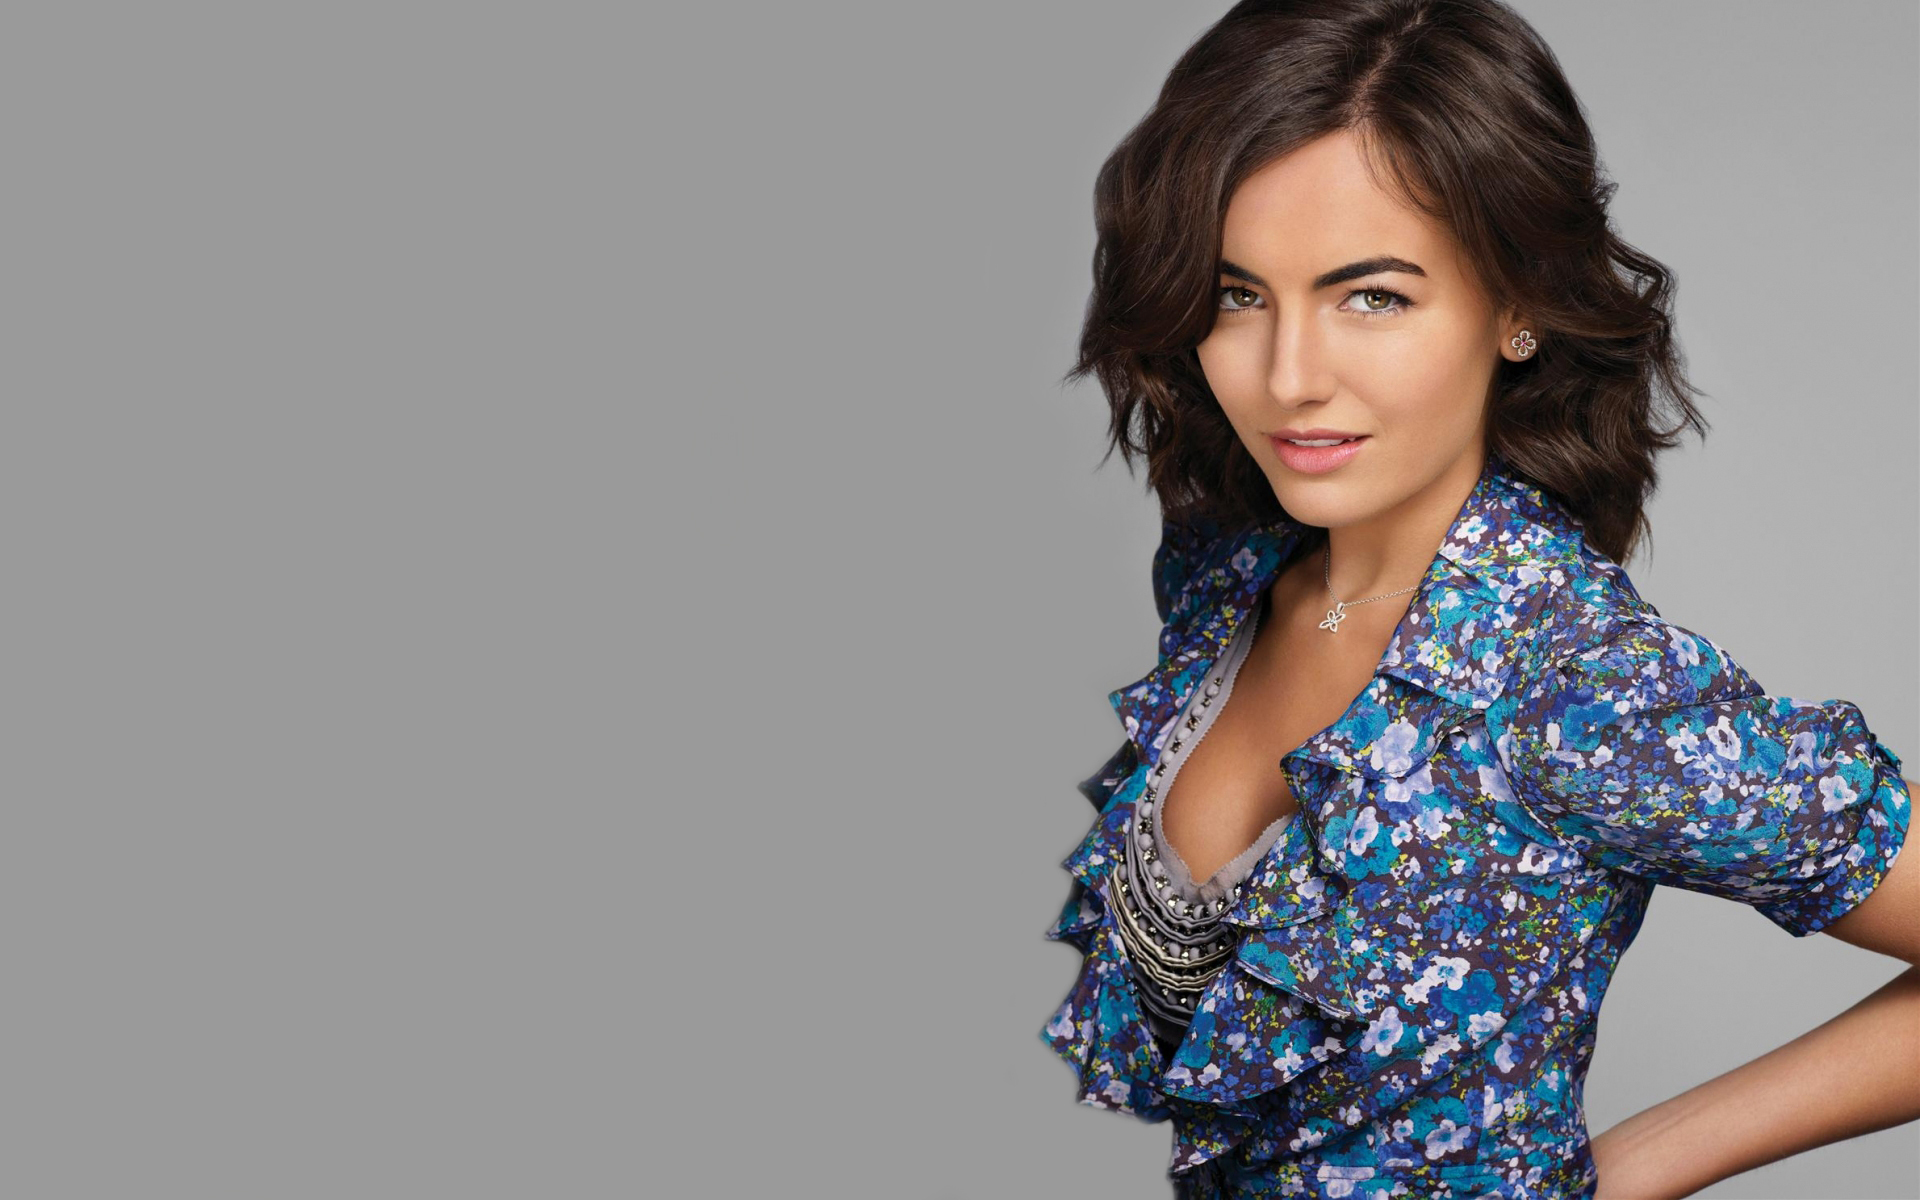 Camilla belle wallpaper hd full hd pictures for Belle photo hd